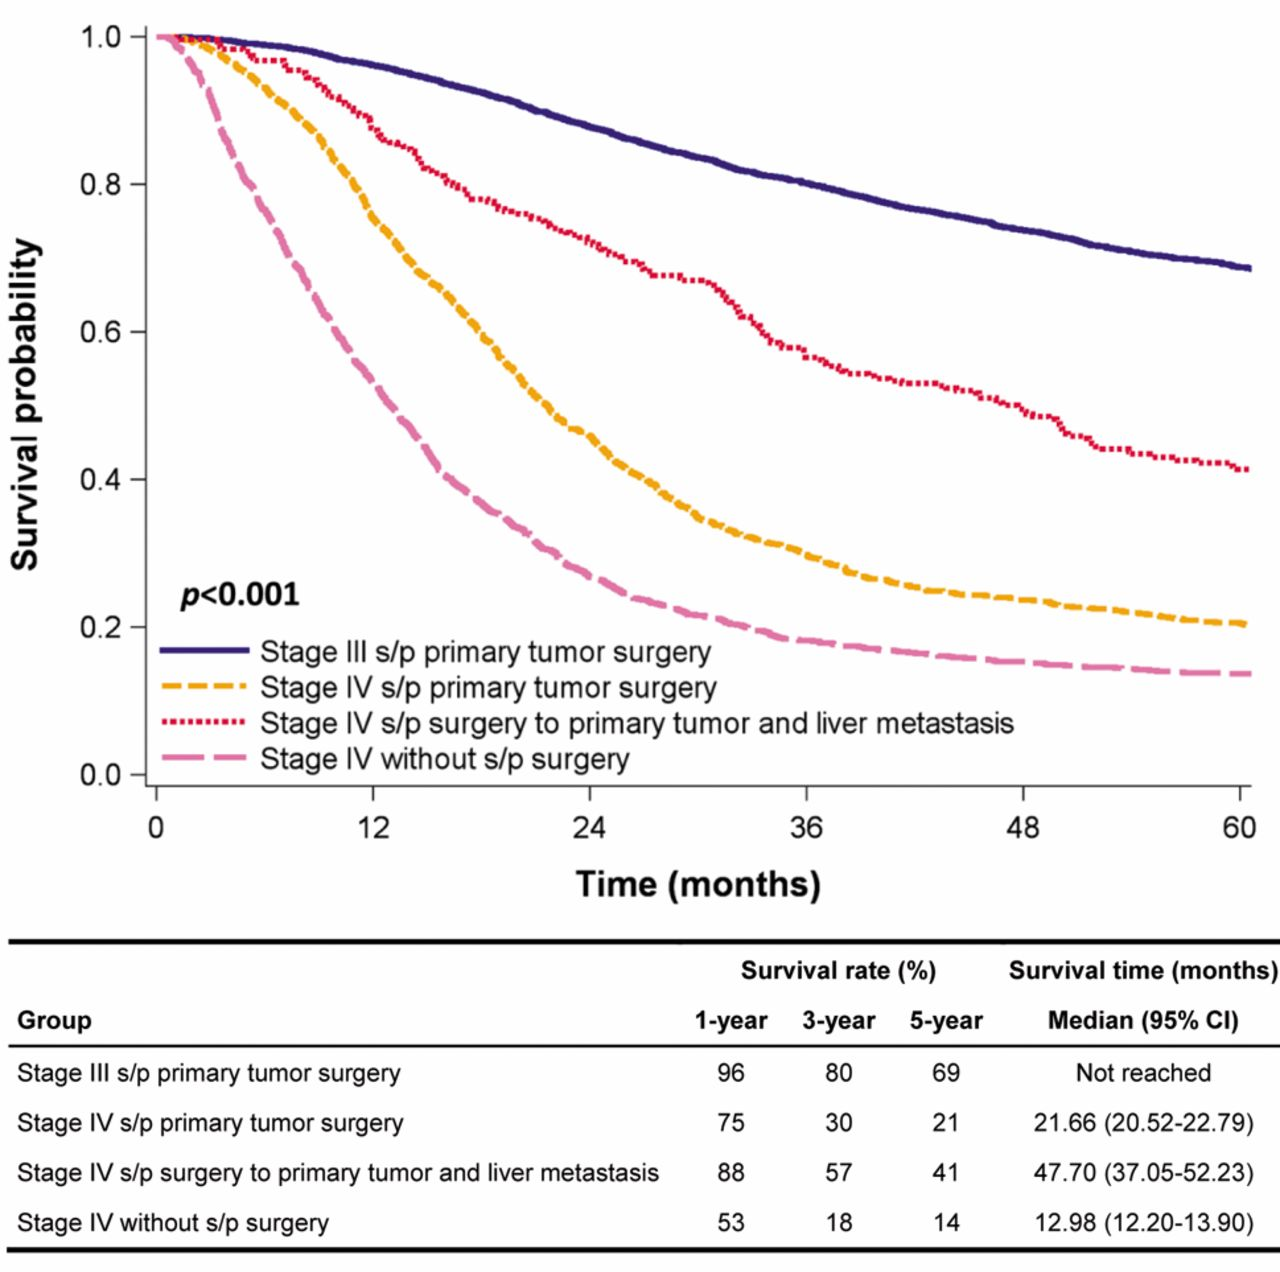 Irinotecan And Oxaliplatin Might Provide Equal Benefit As Adjuvant Chemotherapy For Patients With Resectable Synchronous Colon Cancer And Liver Confined Metastases A Nationwide Database Study